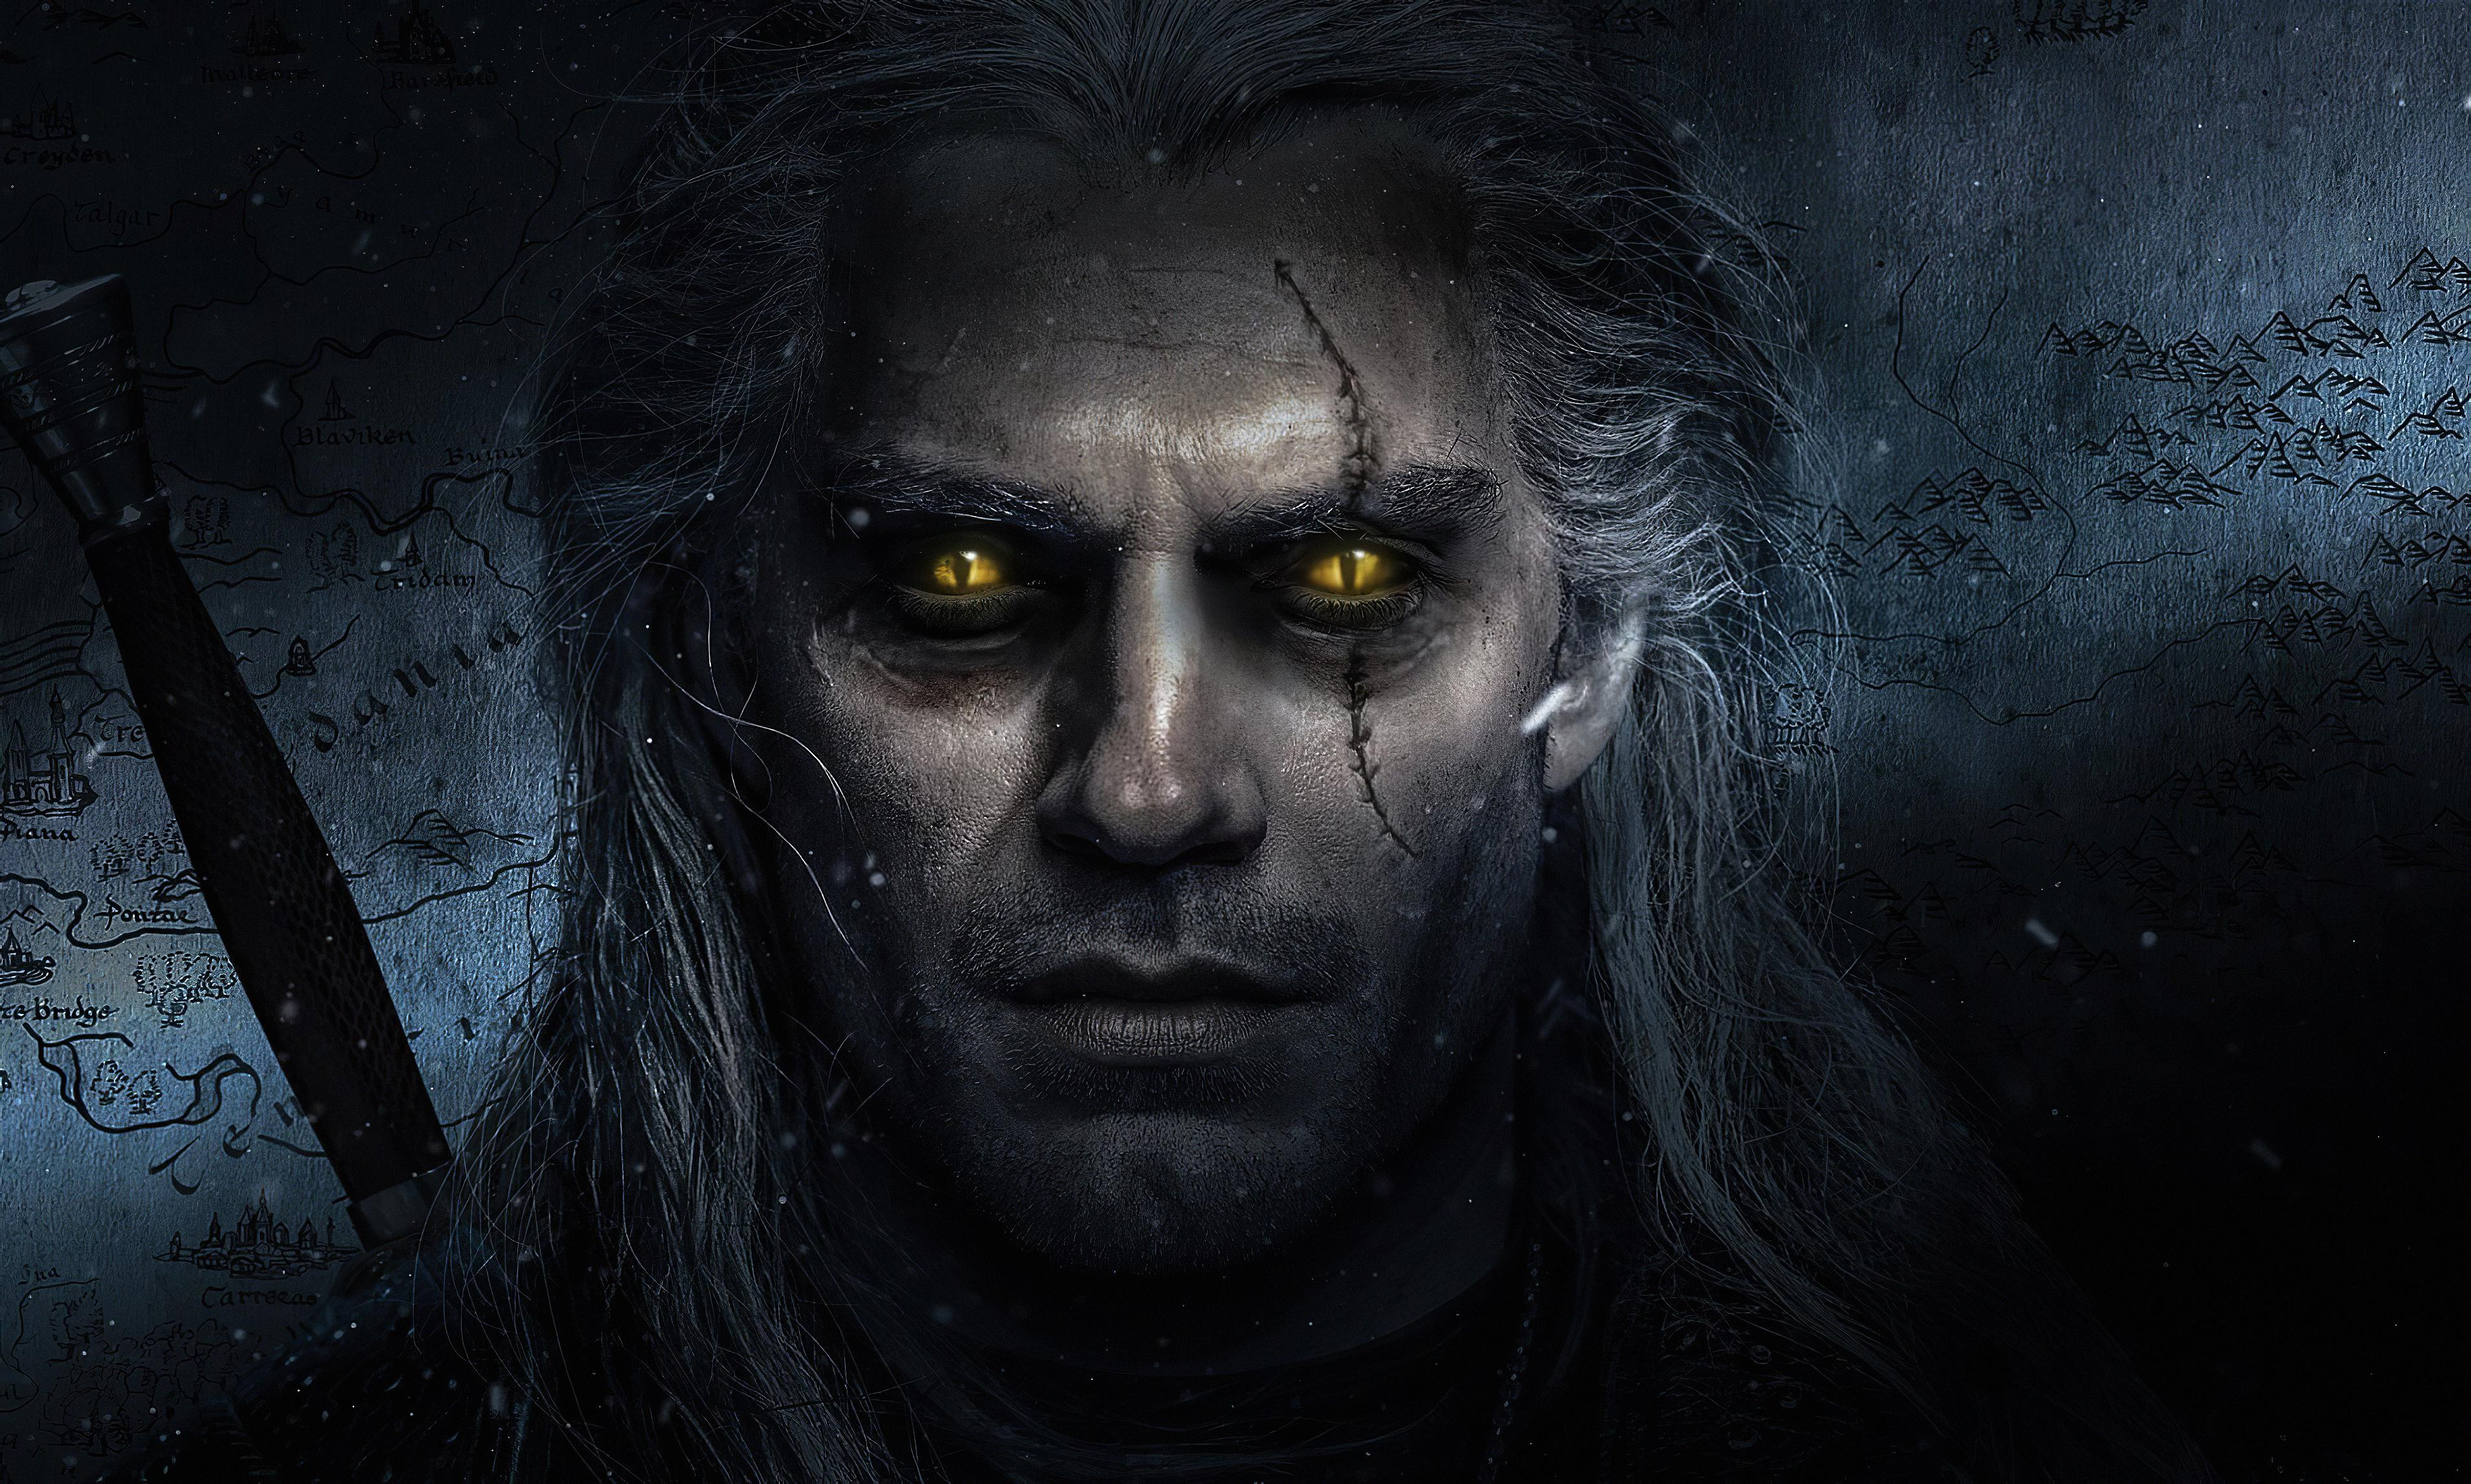 The Witcher TV Series Wallpapers - Wallpaper Cave